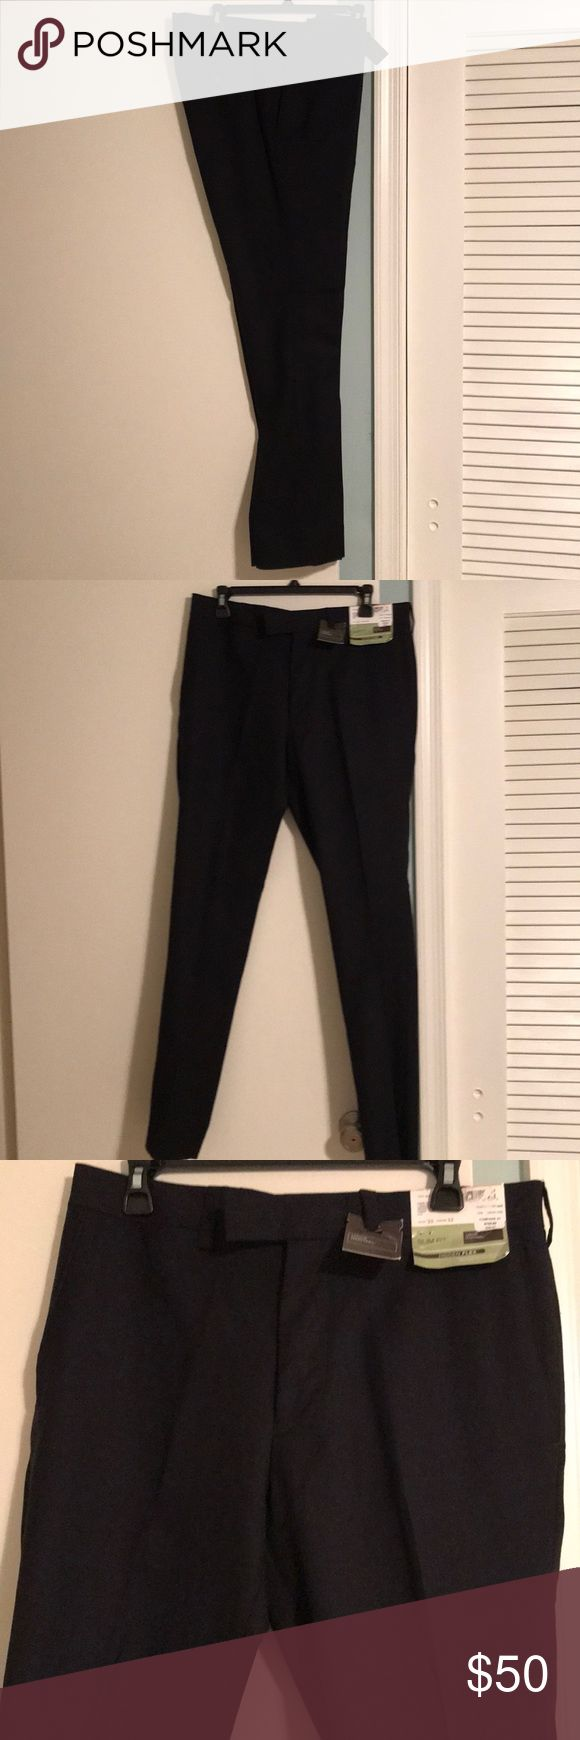 NWT 100% dark navy wool dress pants NWT Louis Raphael Luxe navy blue wool dress pants. 33 waist and 32 inseam. Landon slim fit dress pants with weave effect. The dress pant is slim fit with hidden flex. Zipper and hook closure. Waistband comfort that extends and adjust with body's movement. Brand new, fabulous dress pant! Louis Raphael Luxe Pants Dress